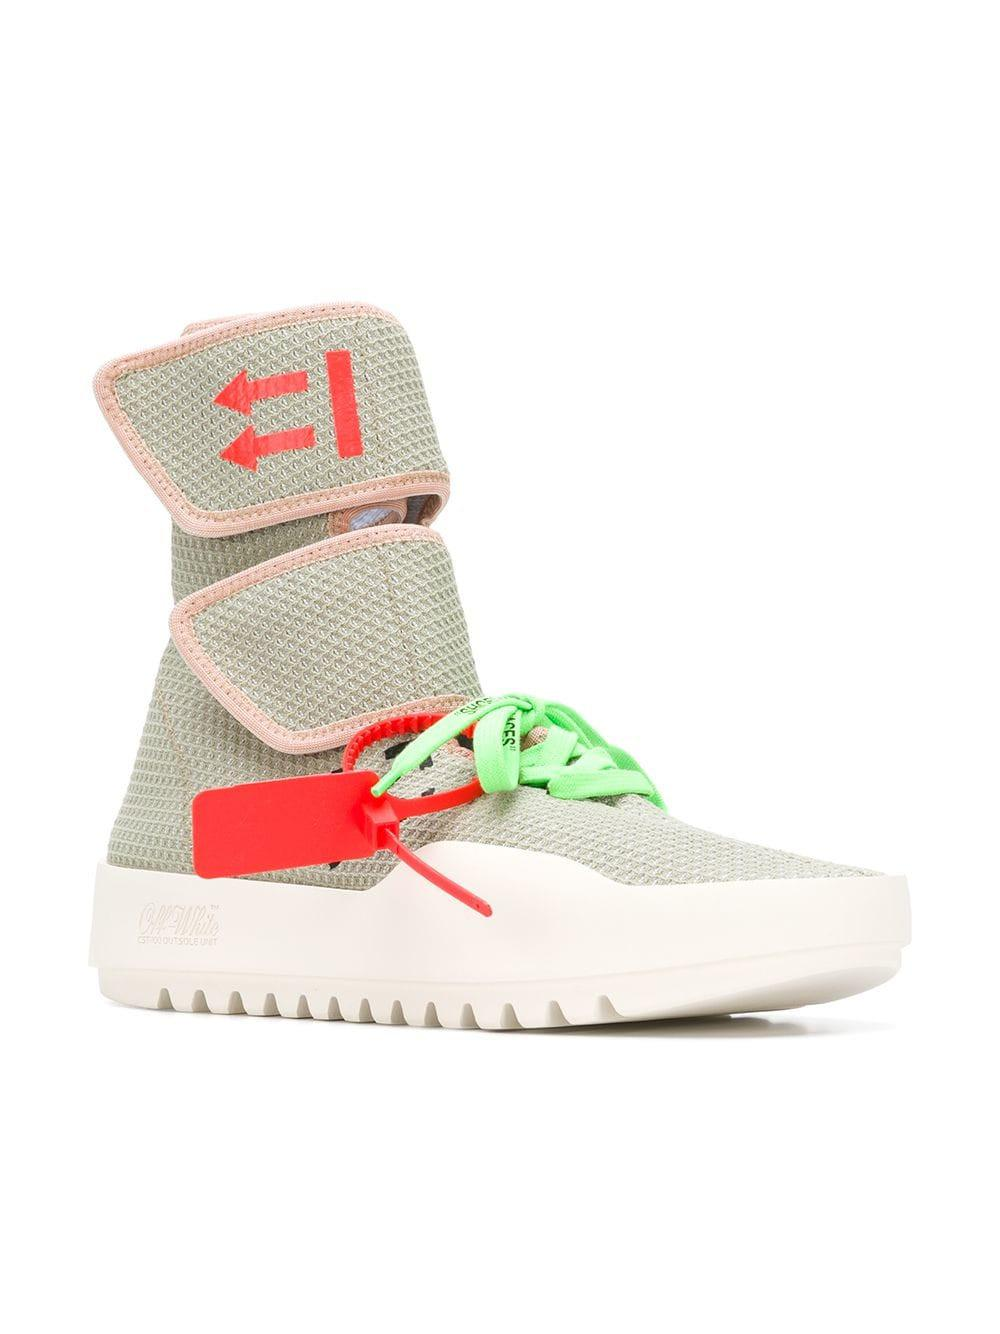 8a10cc5fd084 Off-White c o Virgil Abloh Velcro Sneakers for Men - Save 11% - Lyst